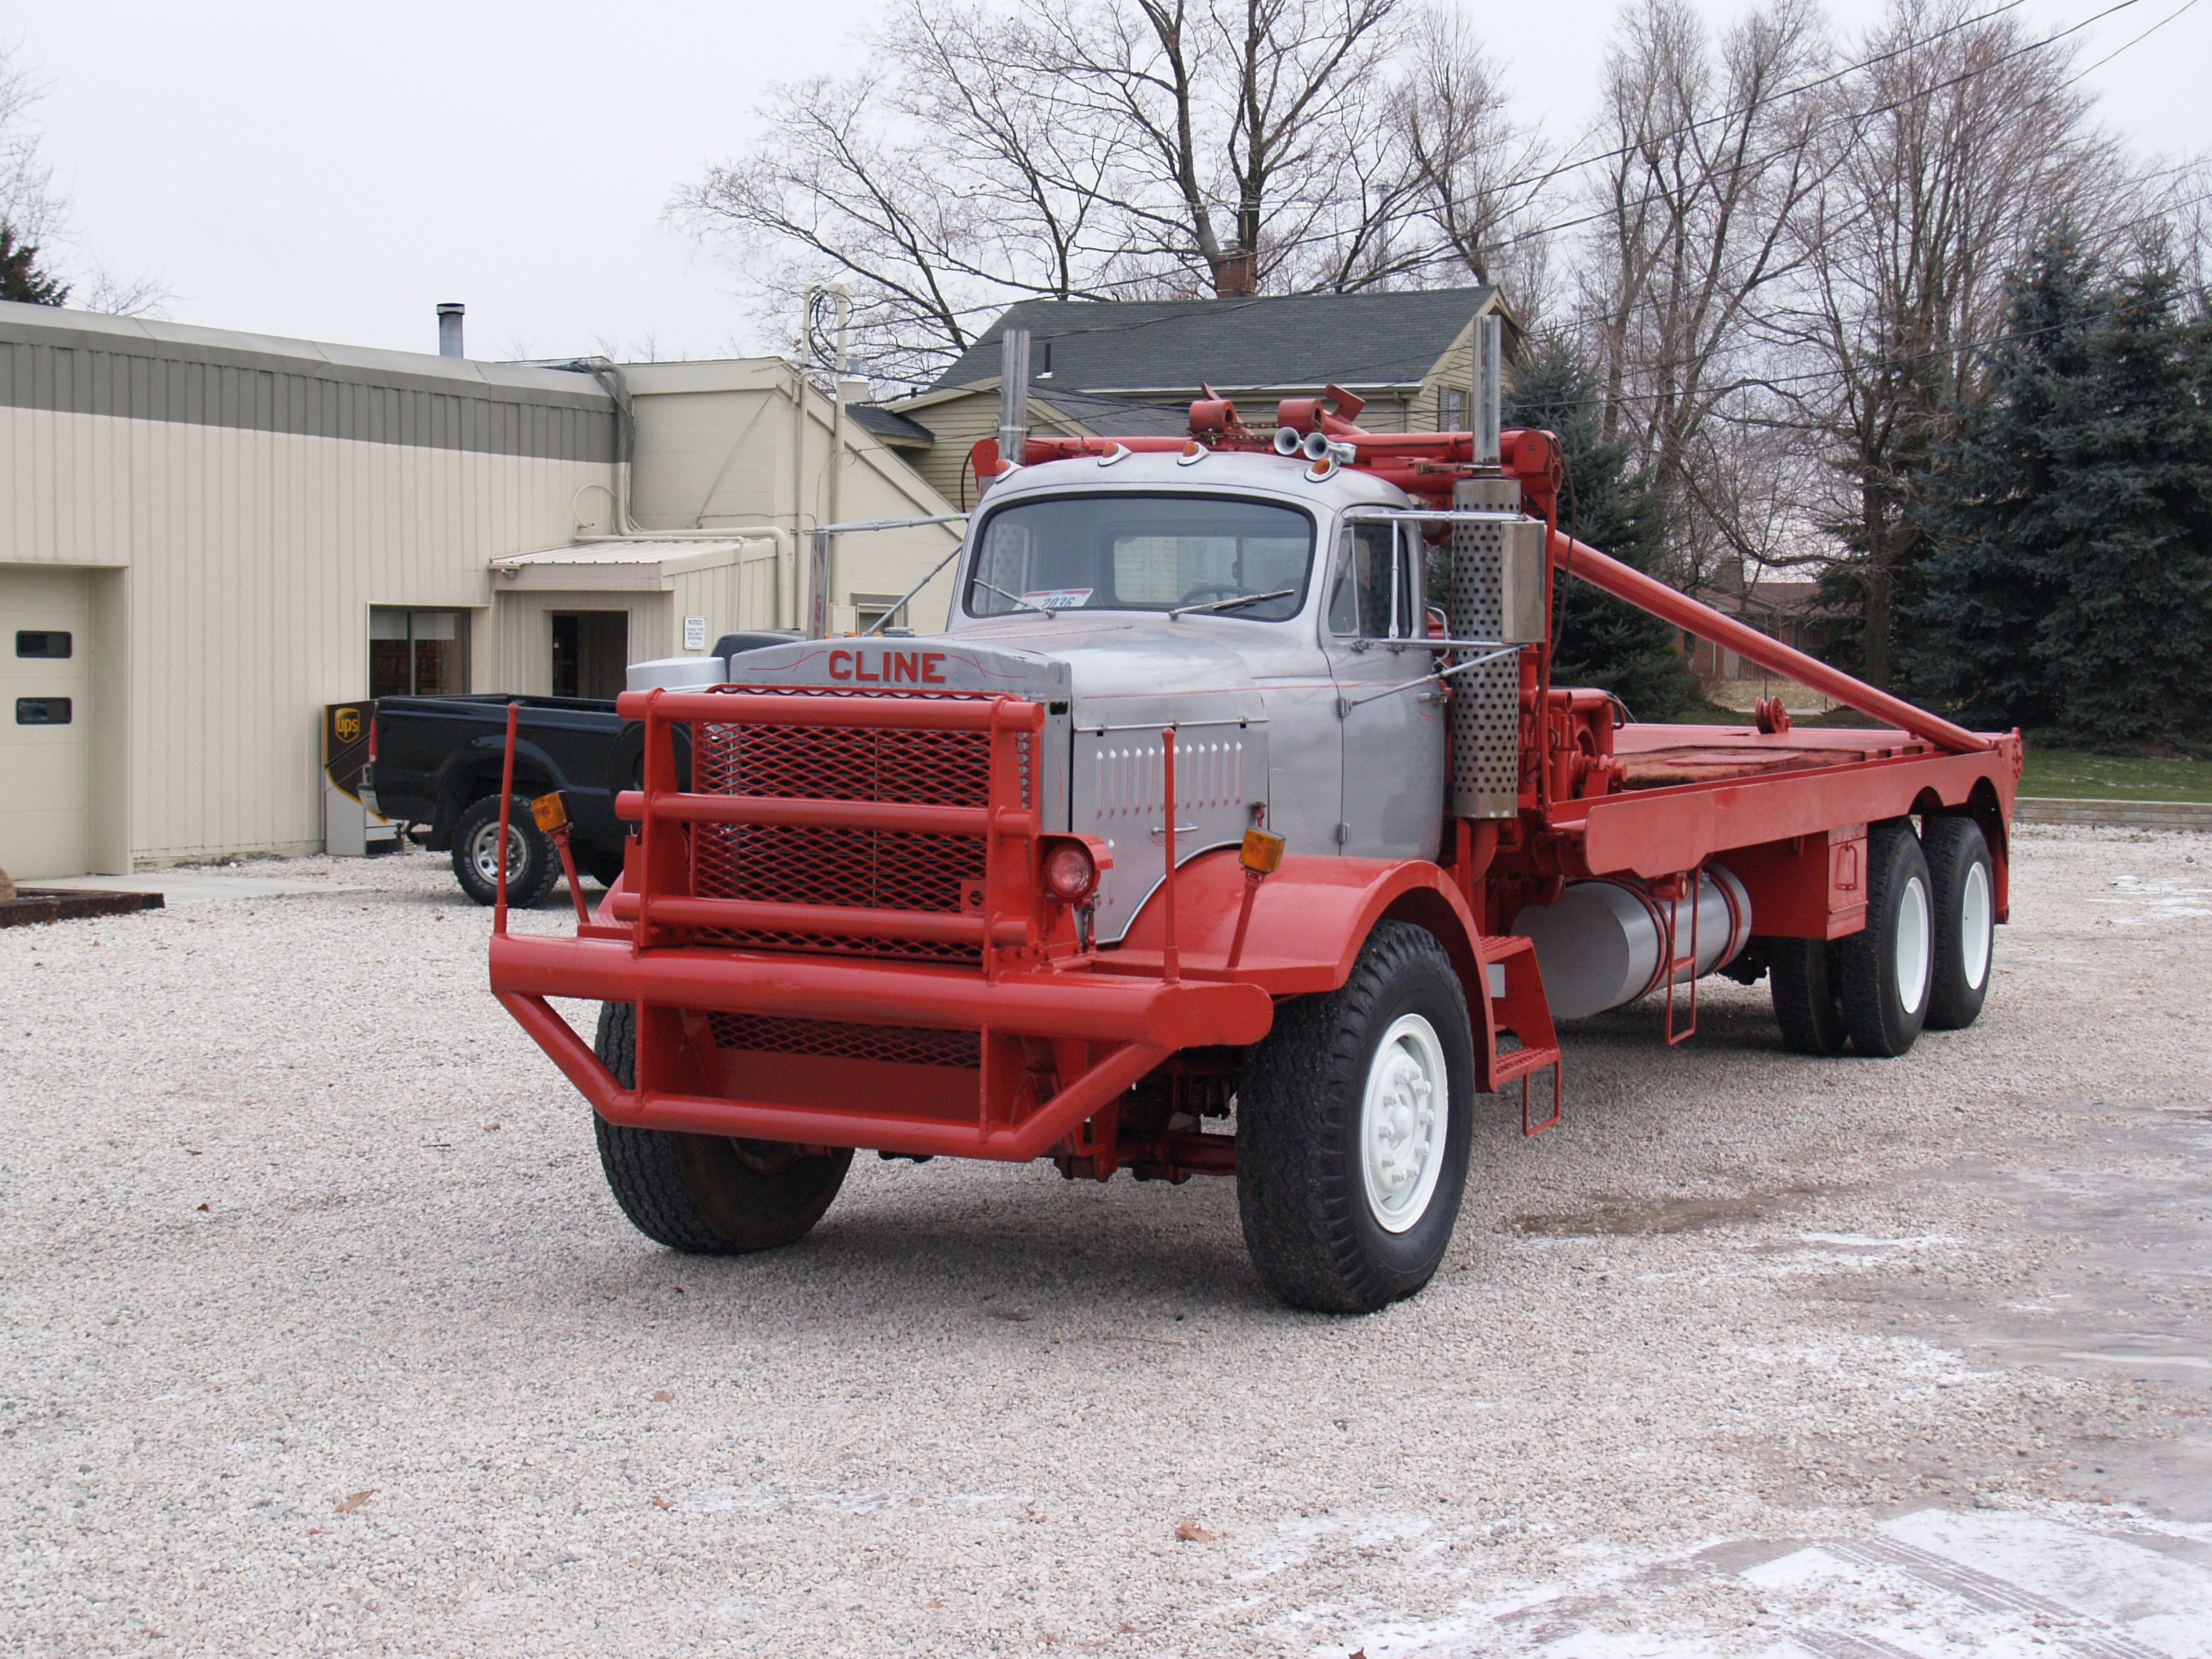 Gmc Truck For Sale >> Used Winch Trucks for Sale - Tiger General LLC